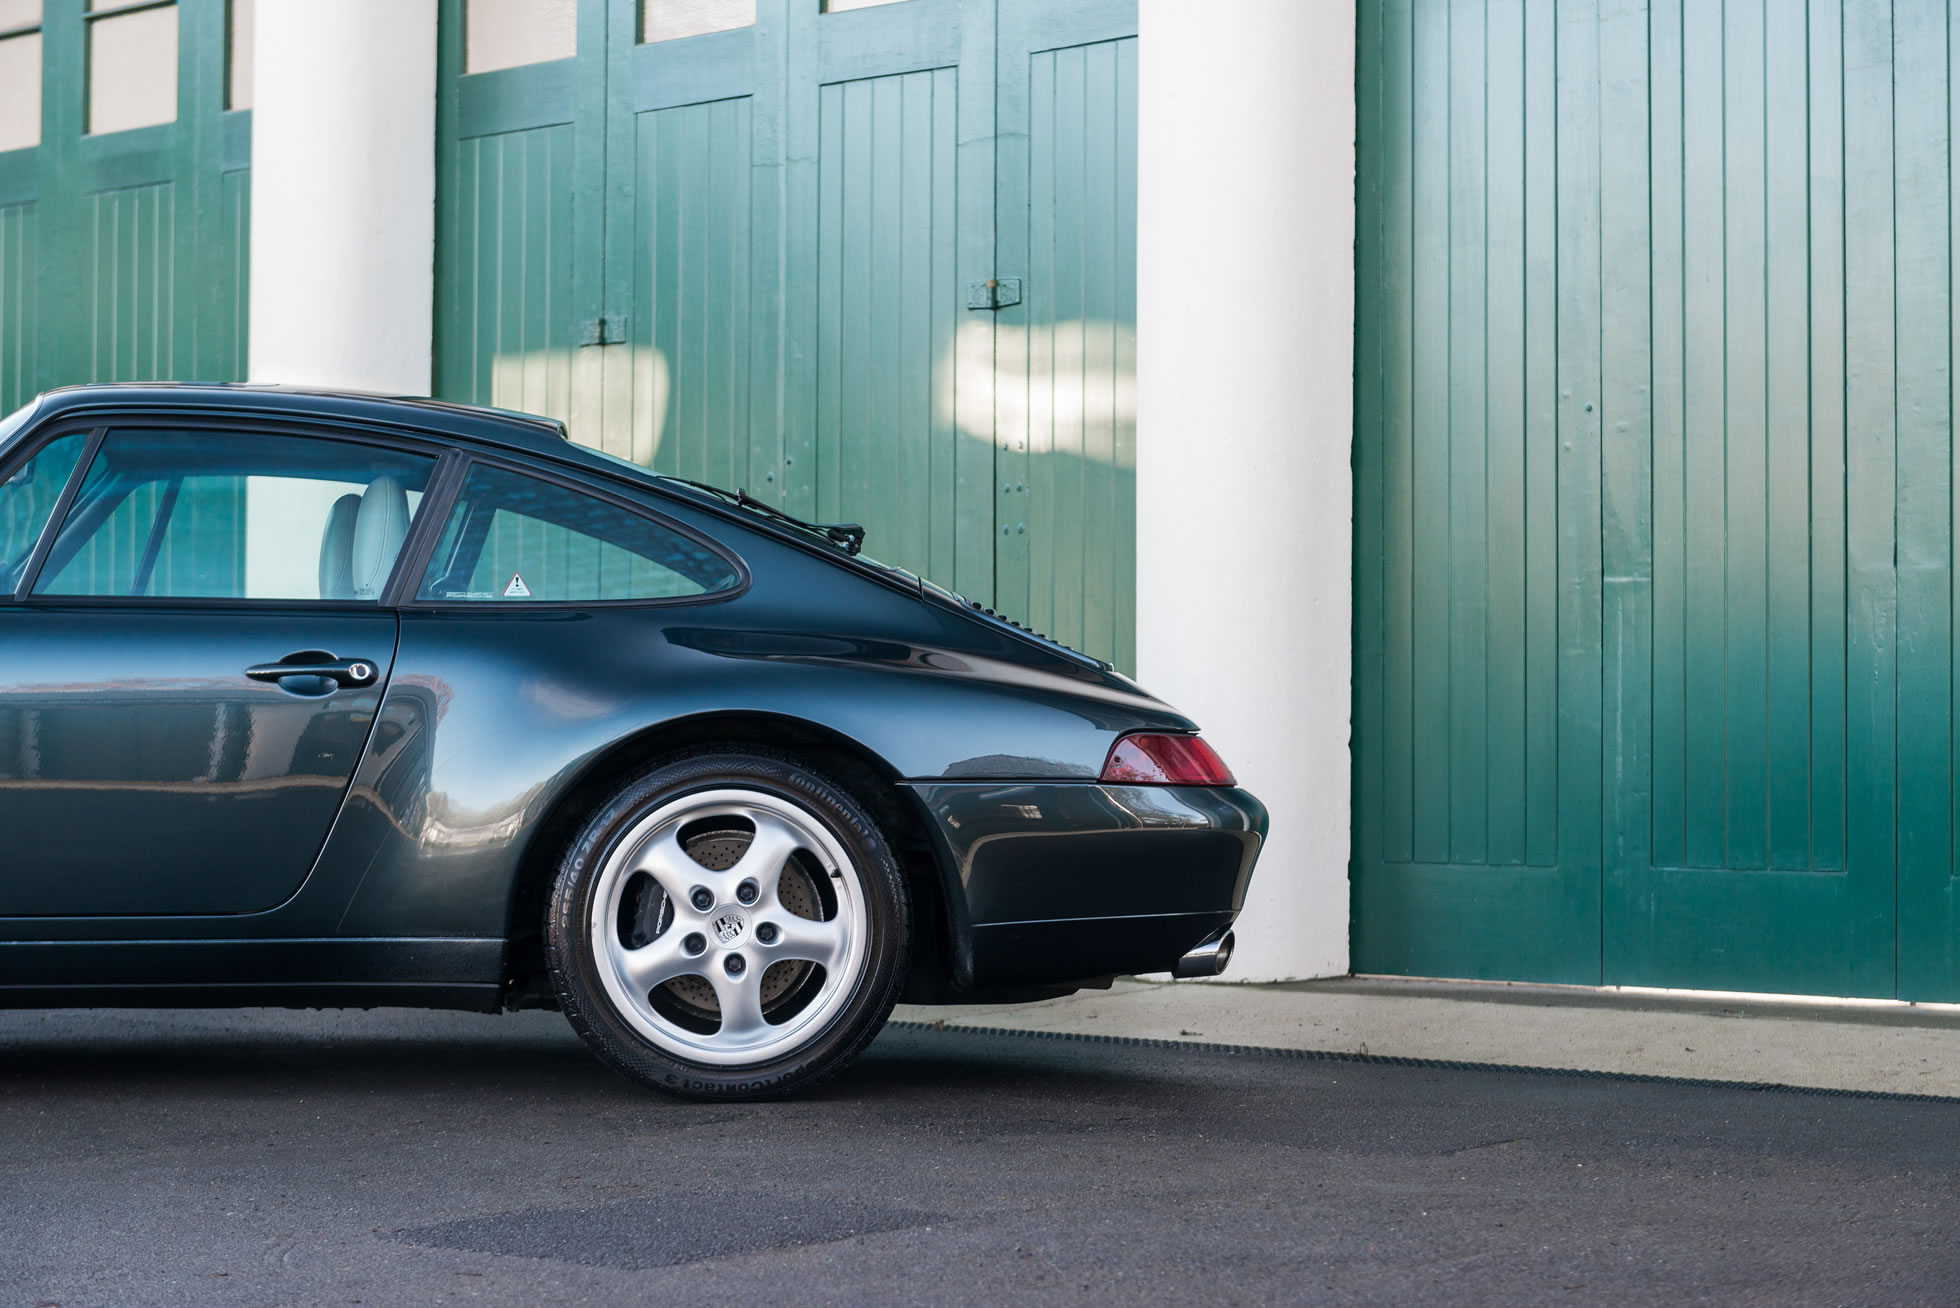 For Sale 1994 Porsche 911 Carrera (993) rear detail